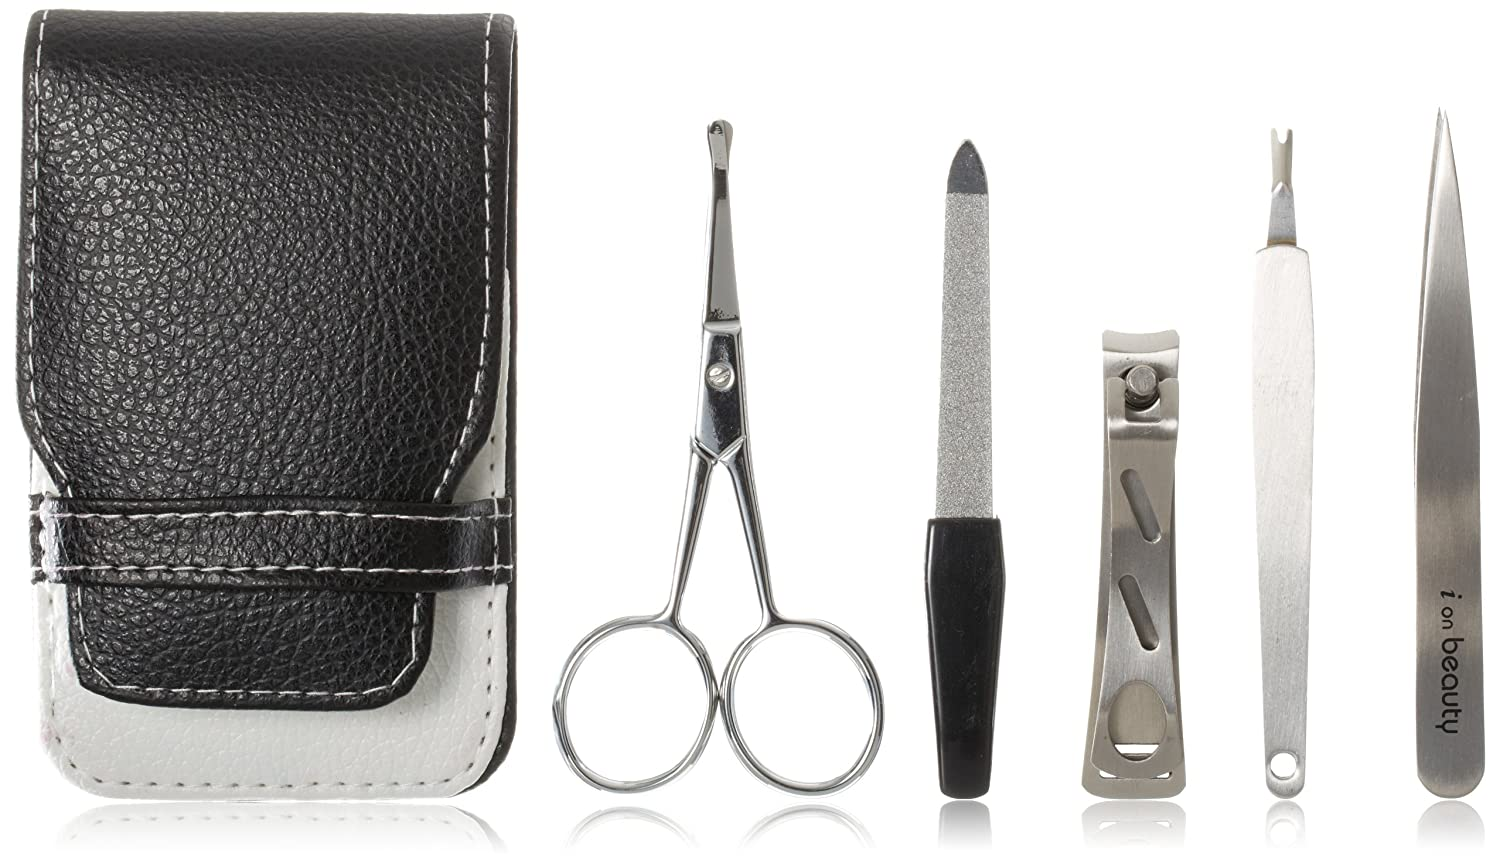 Top 10 Best Travel Grooming Kits for Men Reviews 2018-2020 cover image